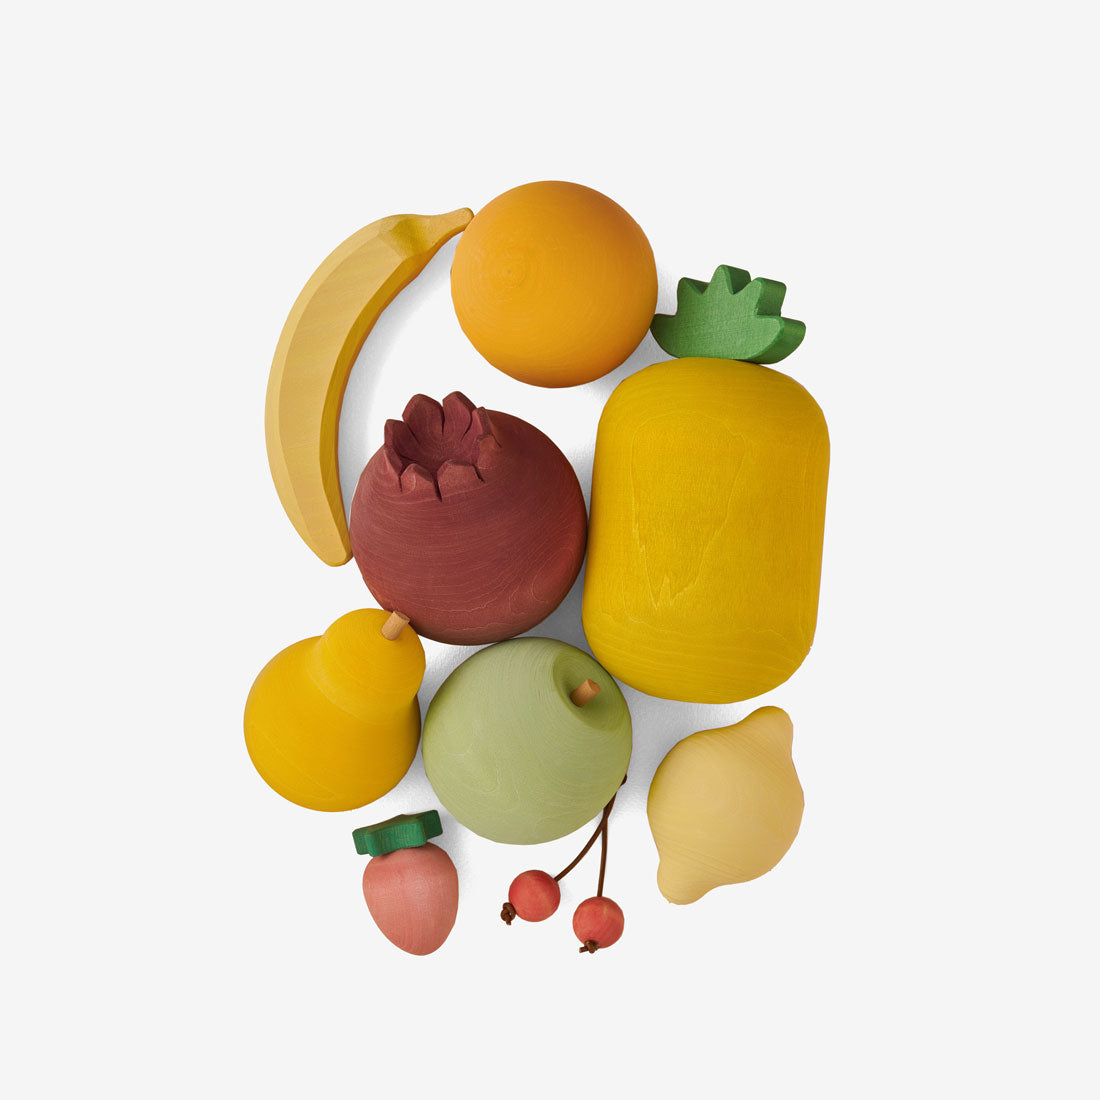 Wooden Foods Play Set - Fruit